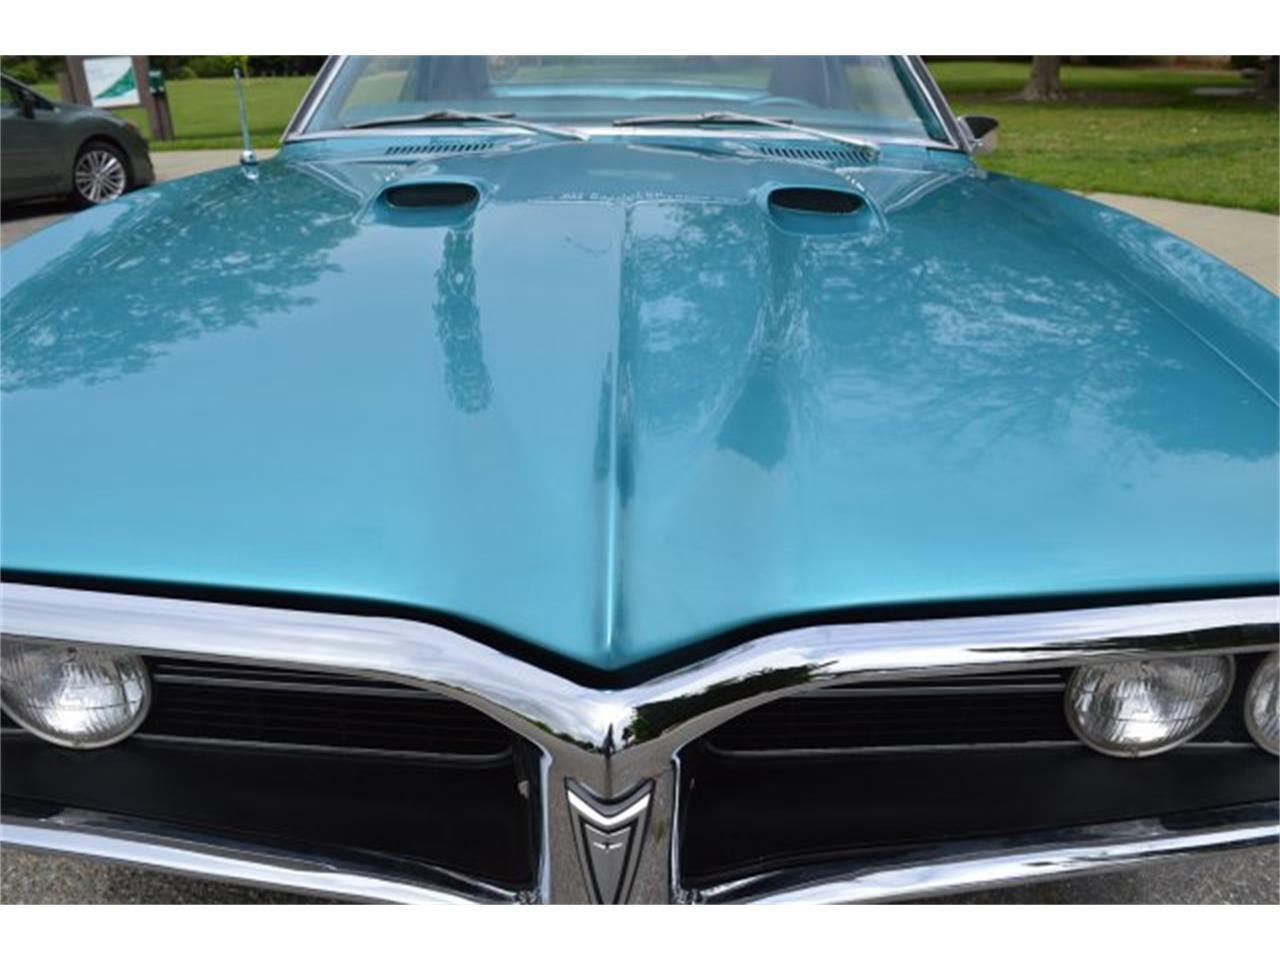 Large Picture of '68 Pontiac Firebird located in San Jose California Auction Vehicle - KV9Z